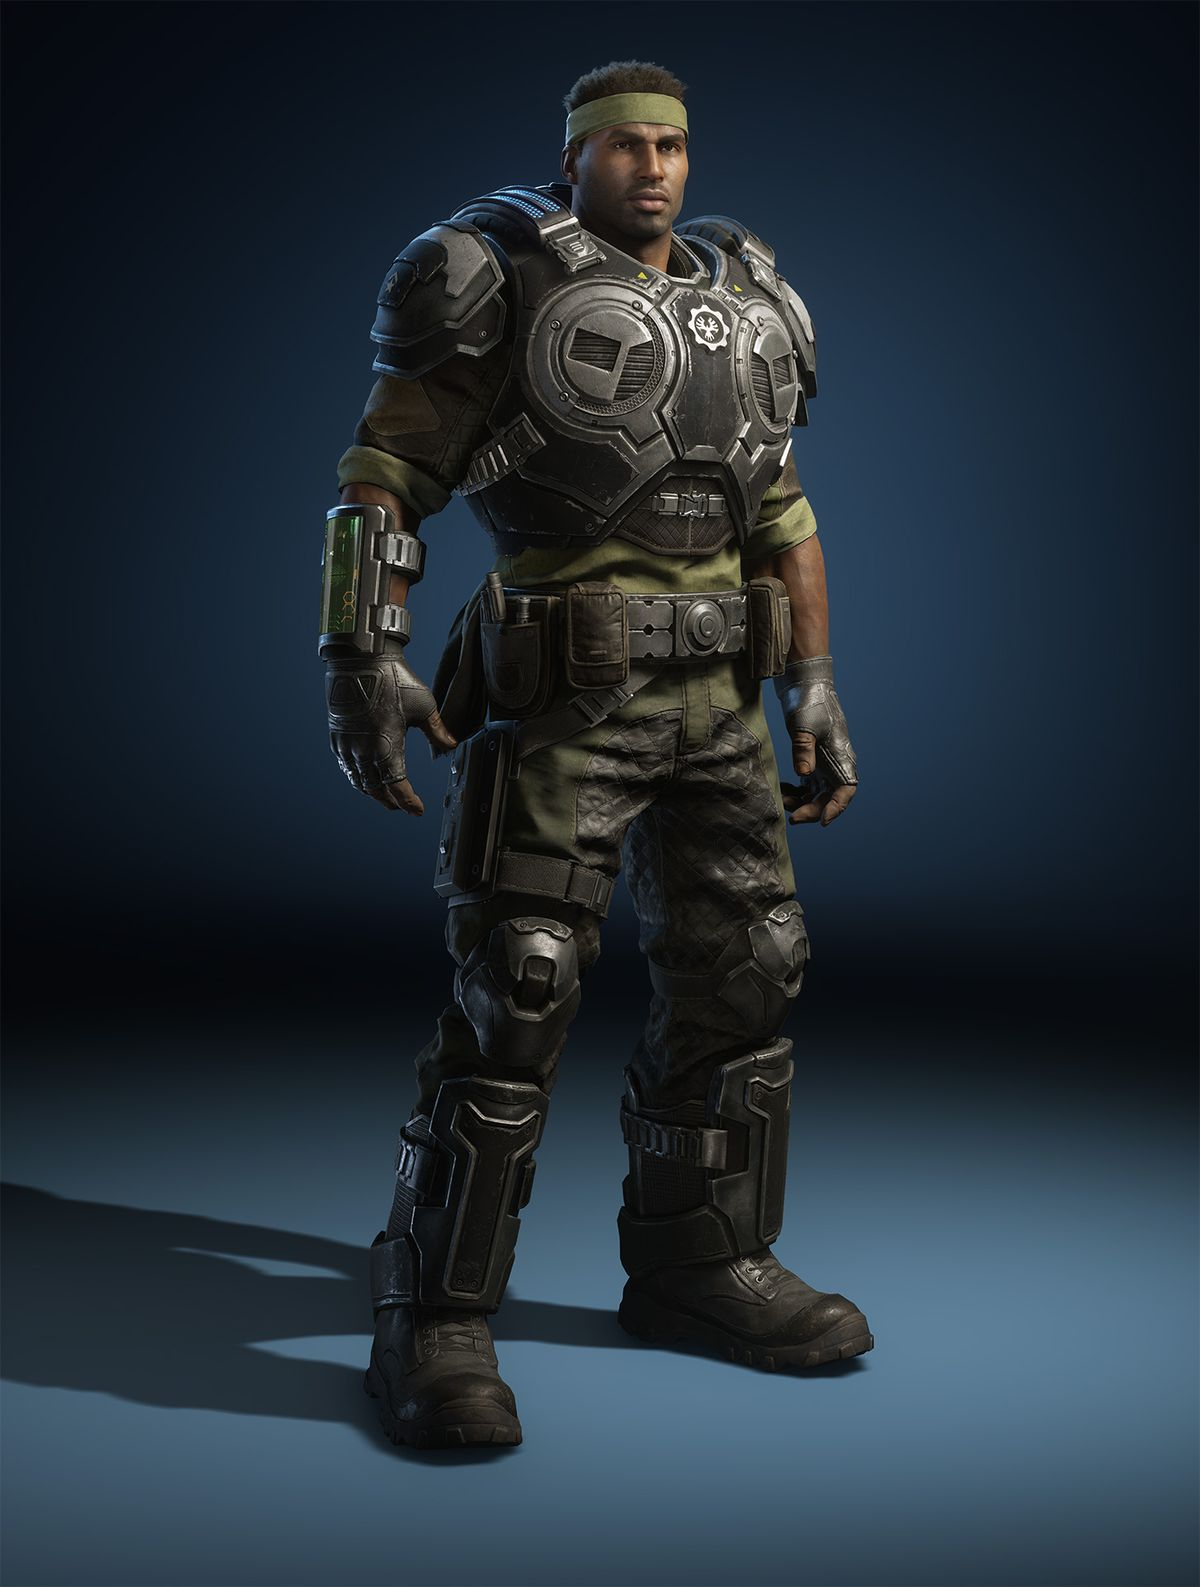 a render of the Gears 5 character Del Walker in military armor